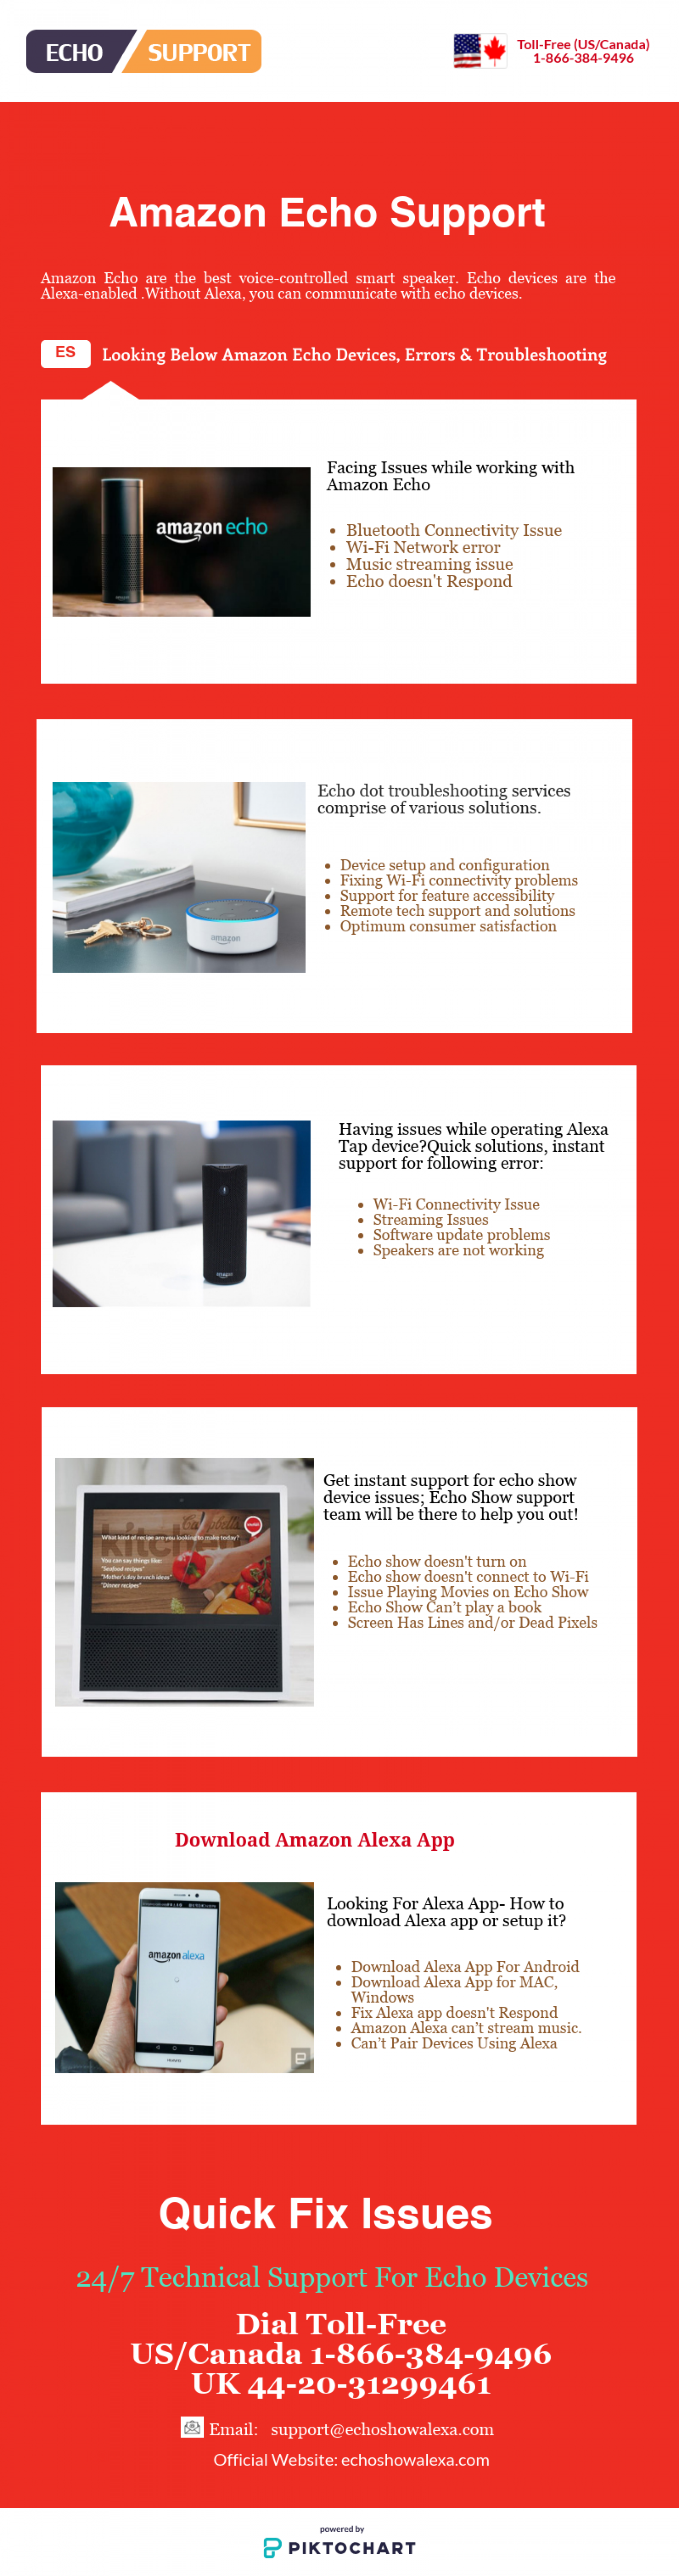 Support For Amazon Echo Devices Infographic